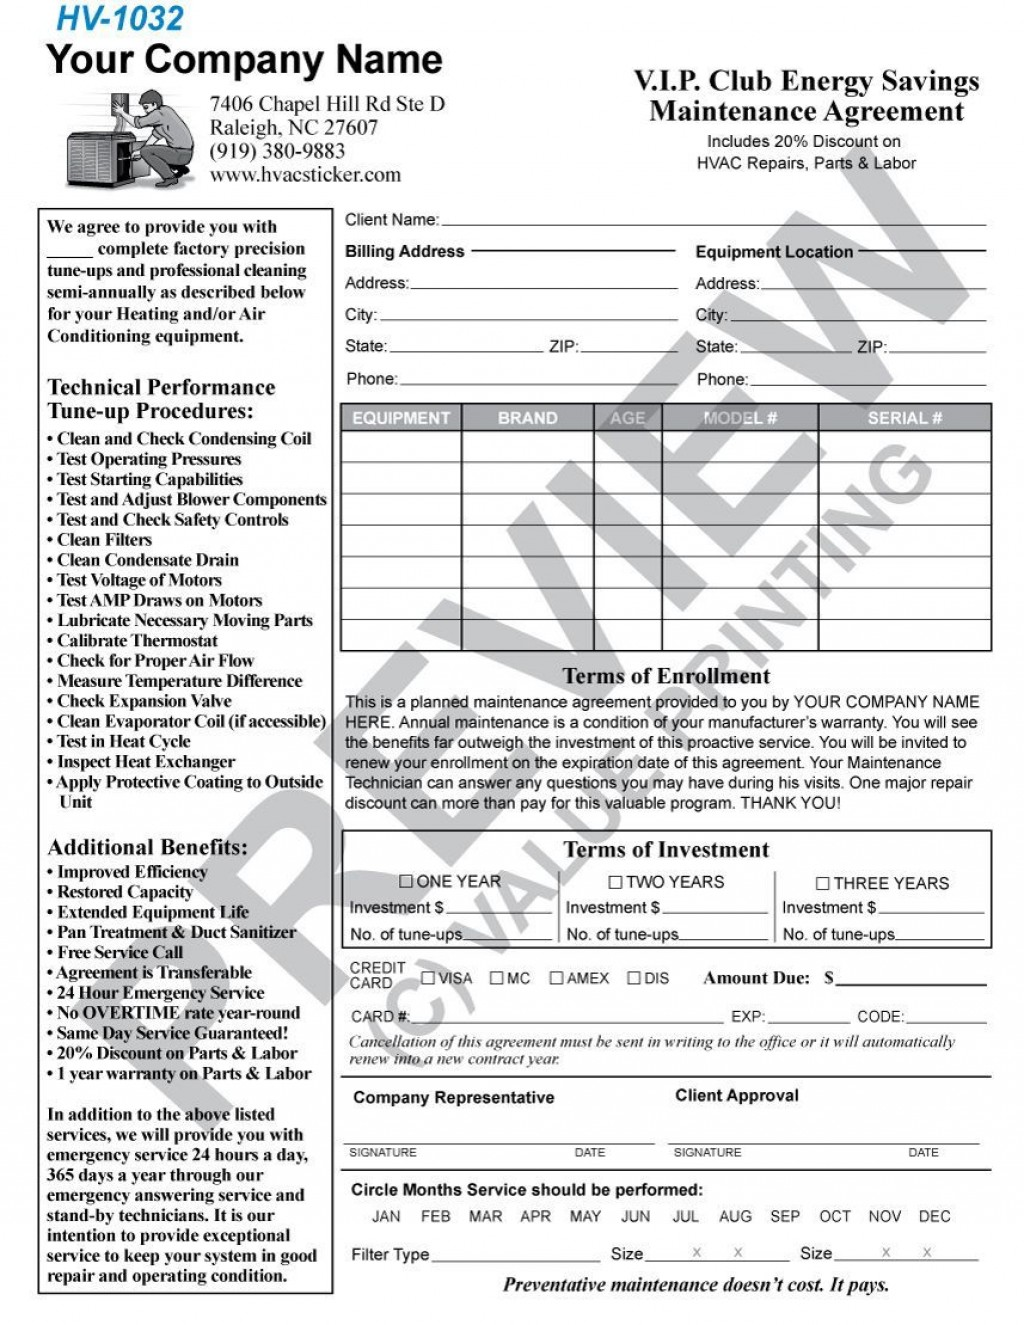 004 Incredible Commercial Hvac Service Agreement Template Picture  Maintenance ContractLarge